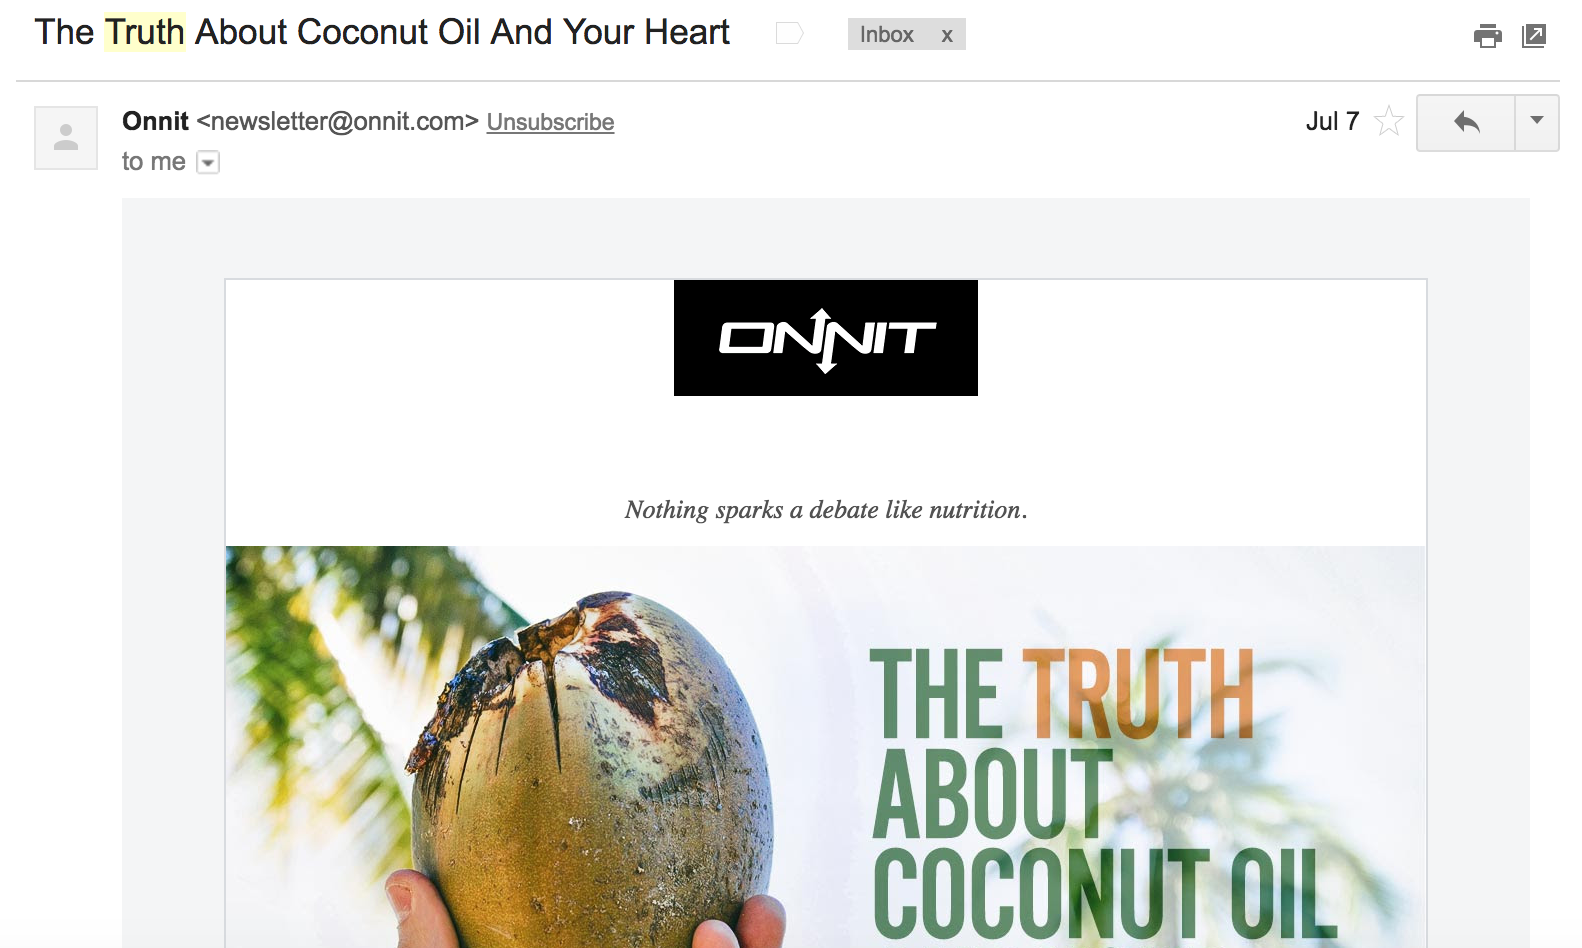 ONNIT truth email subject example